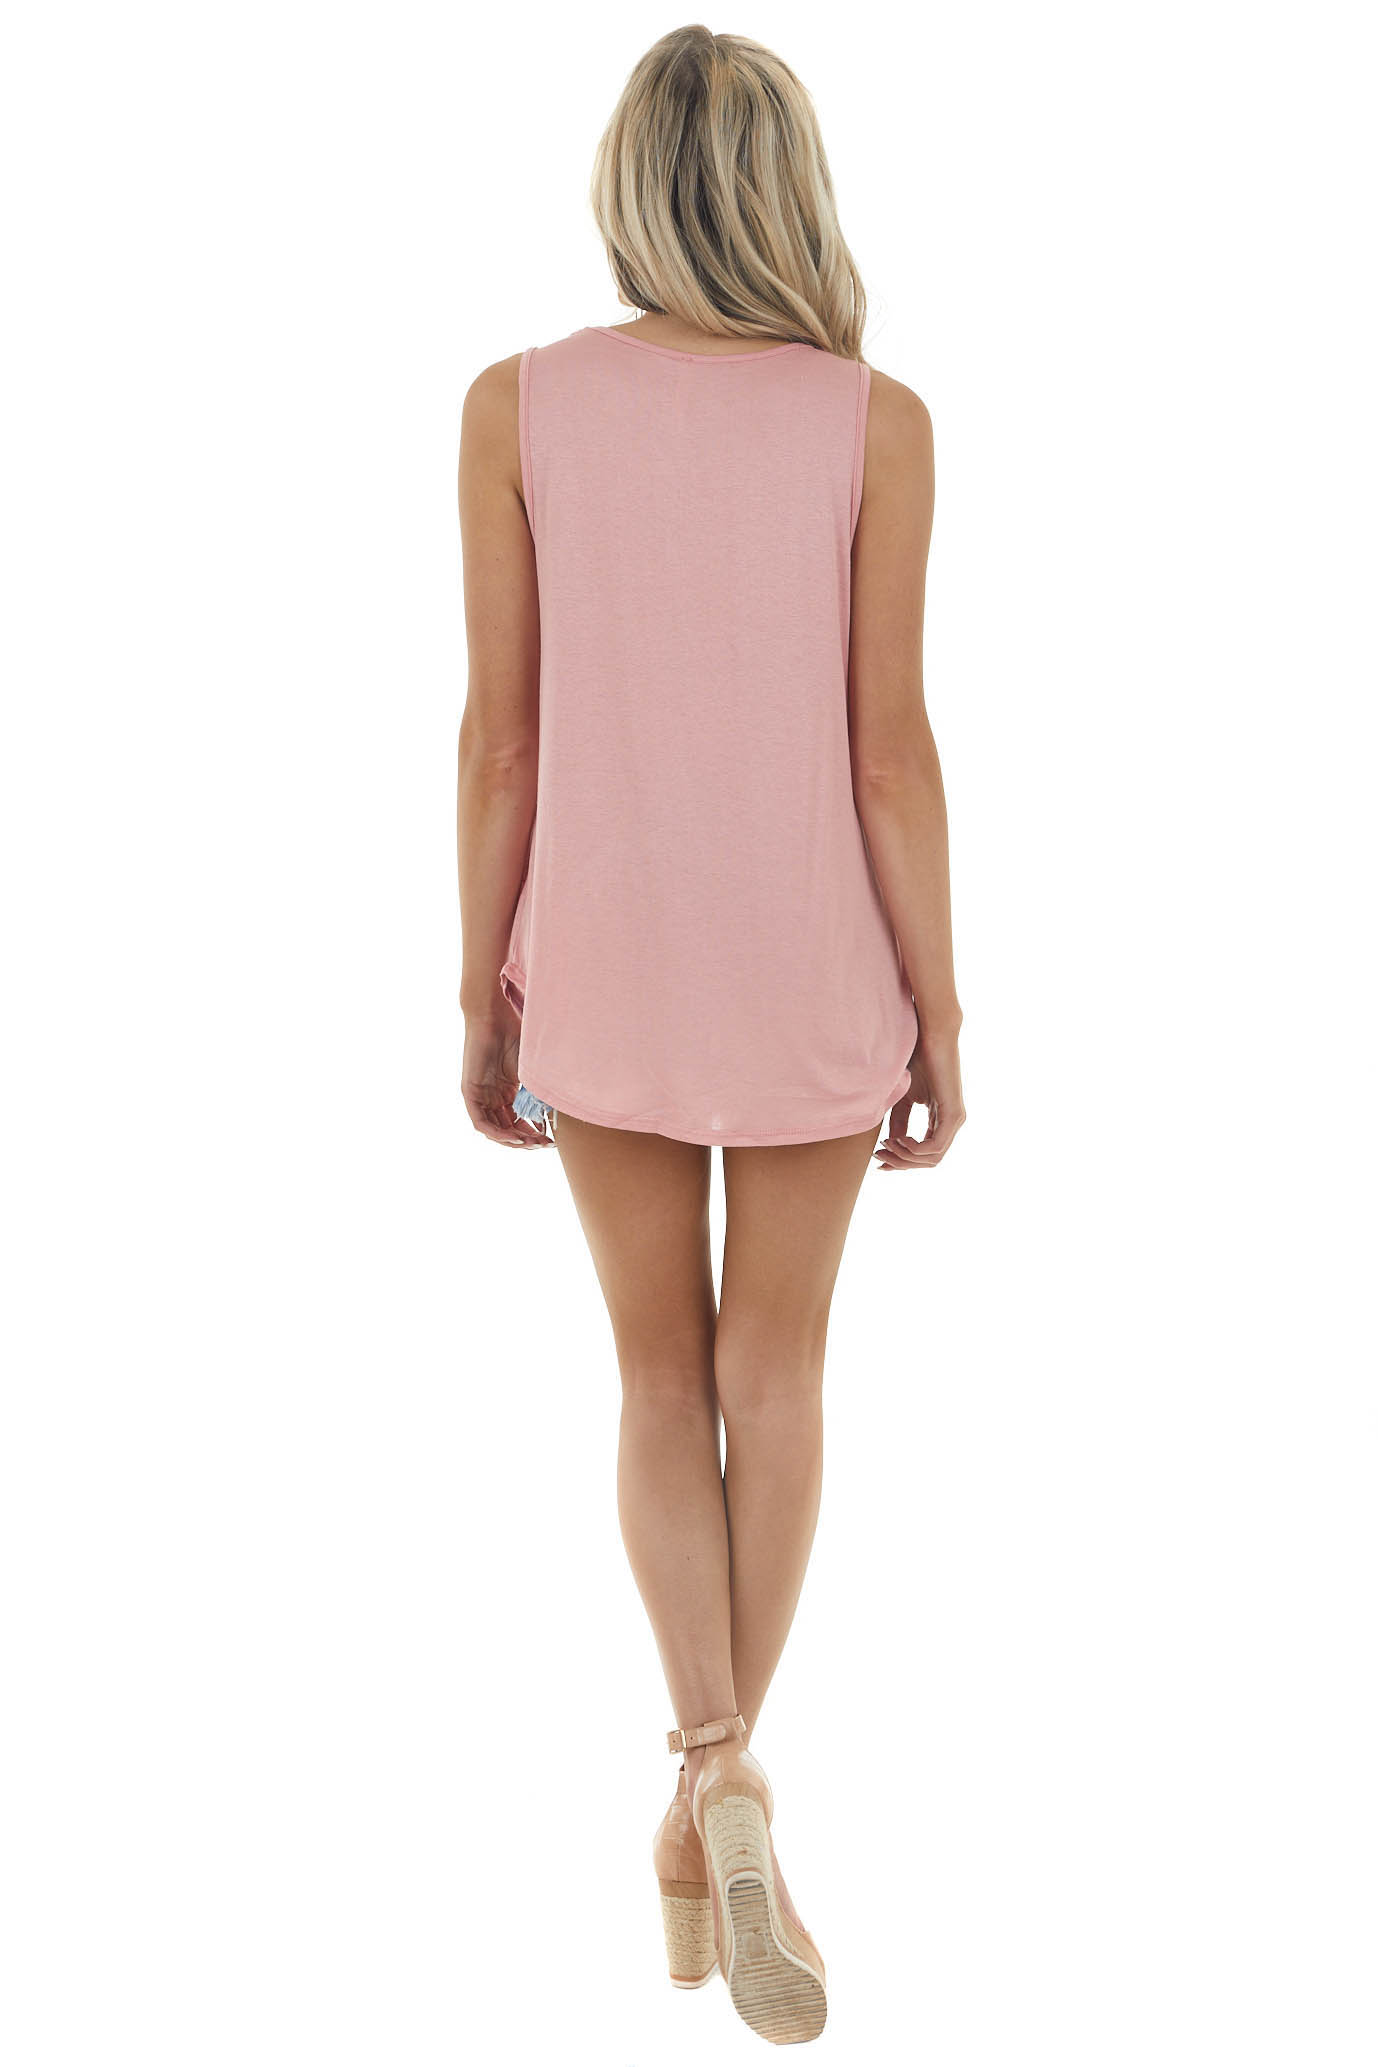 Peony Pink Sleeveless Knit Tank Top with Ladder Neck Detail